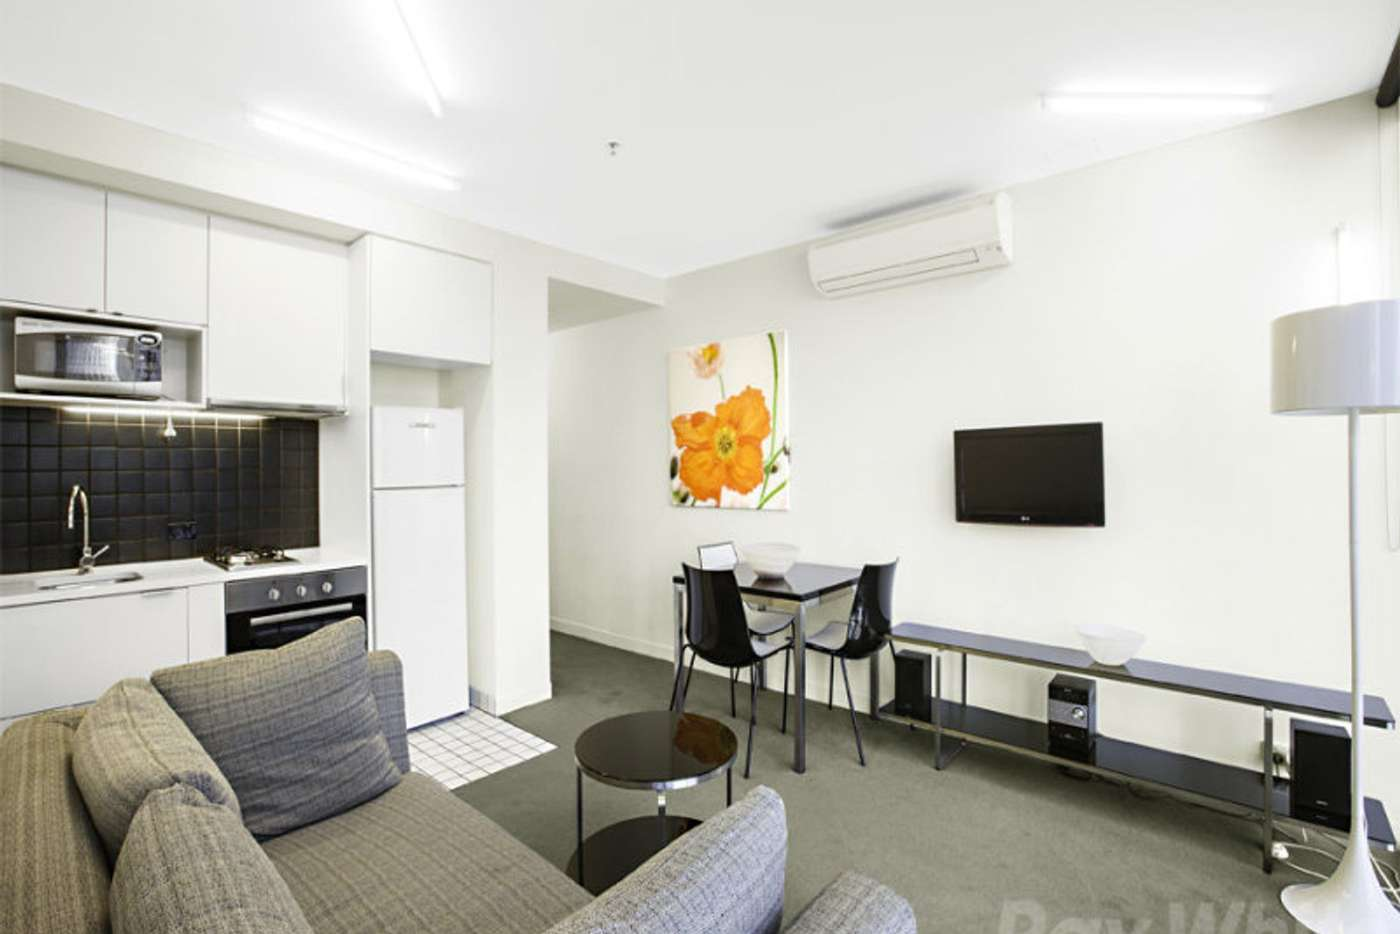 Main view of Homely apartment listing, 1007/31 Abeckett Street, Melbourne VIC 3000